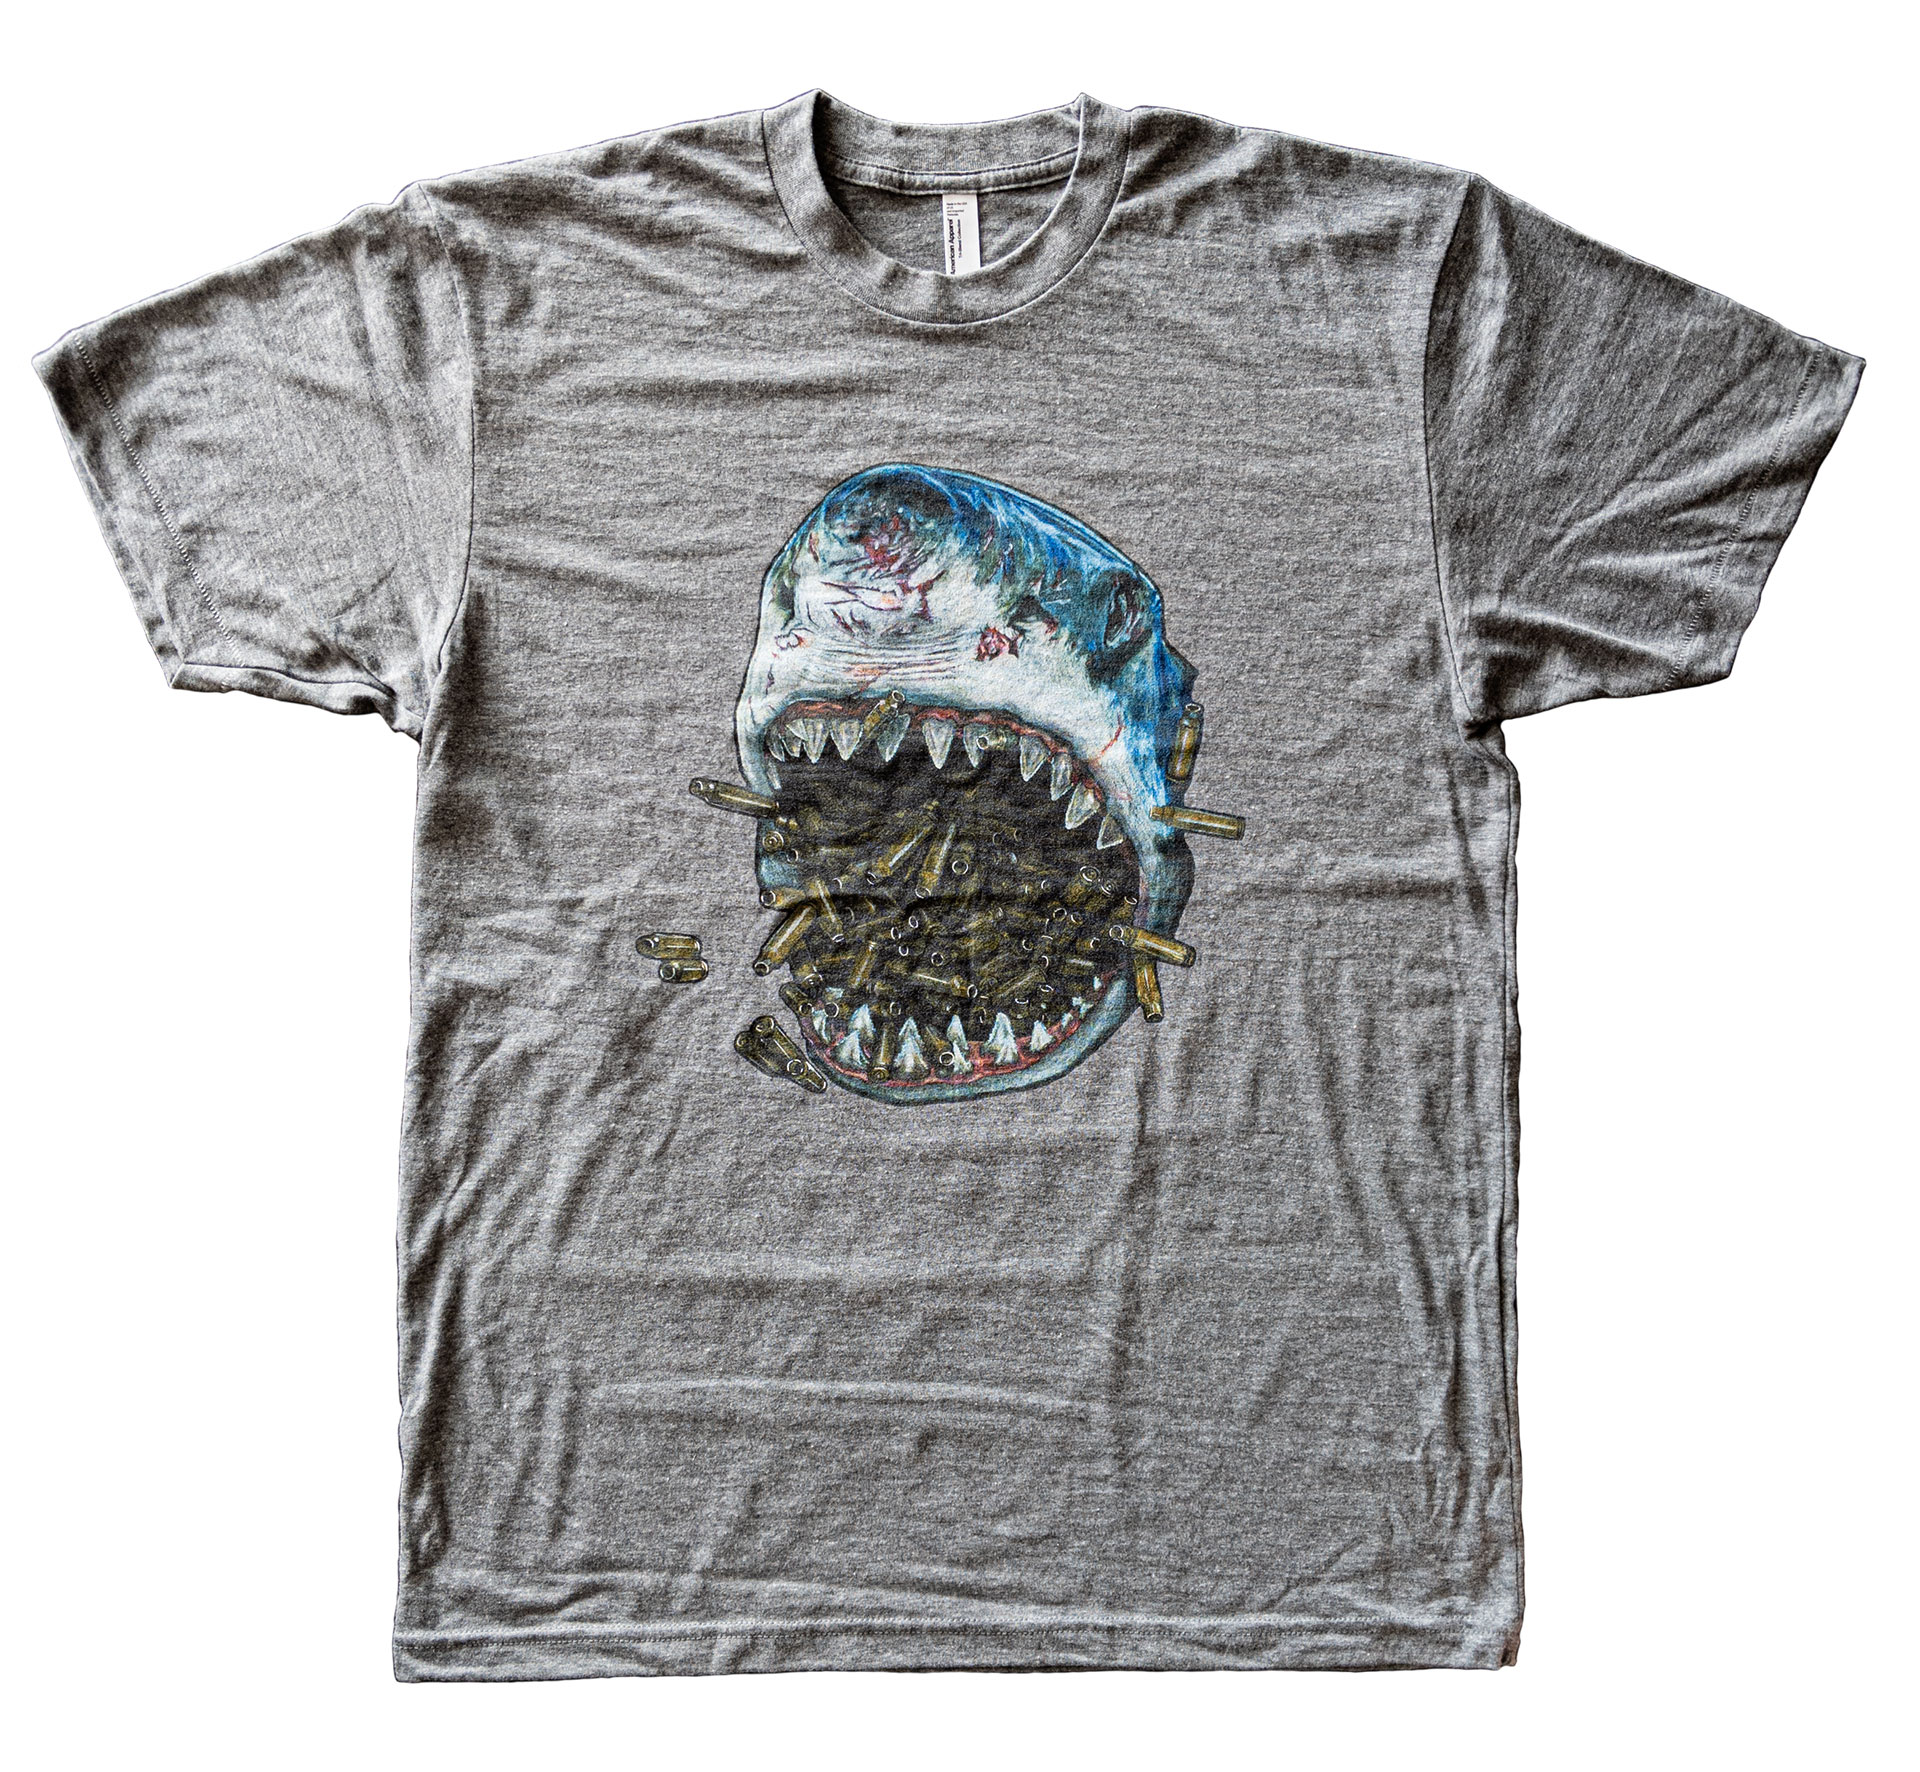 Brass Shark TriGrey T-Shirt